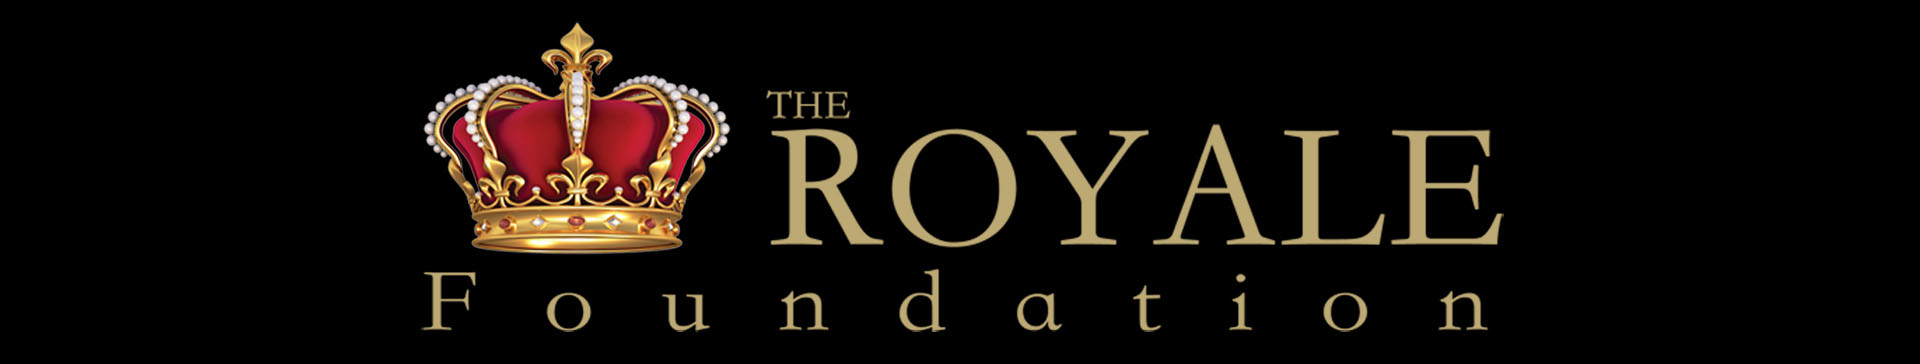 The Royale Foundation